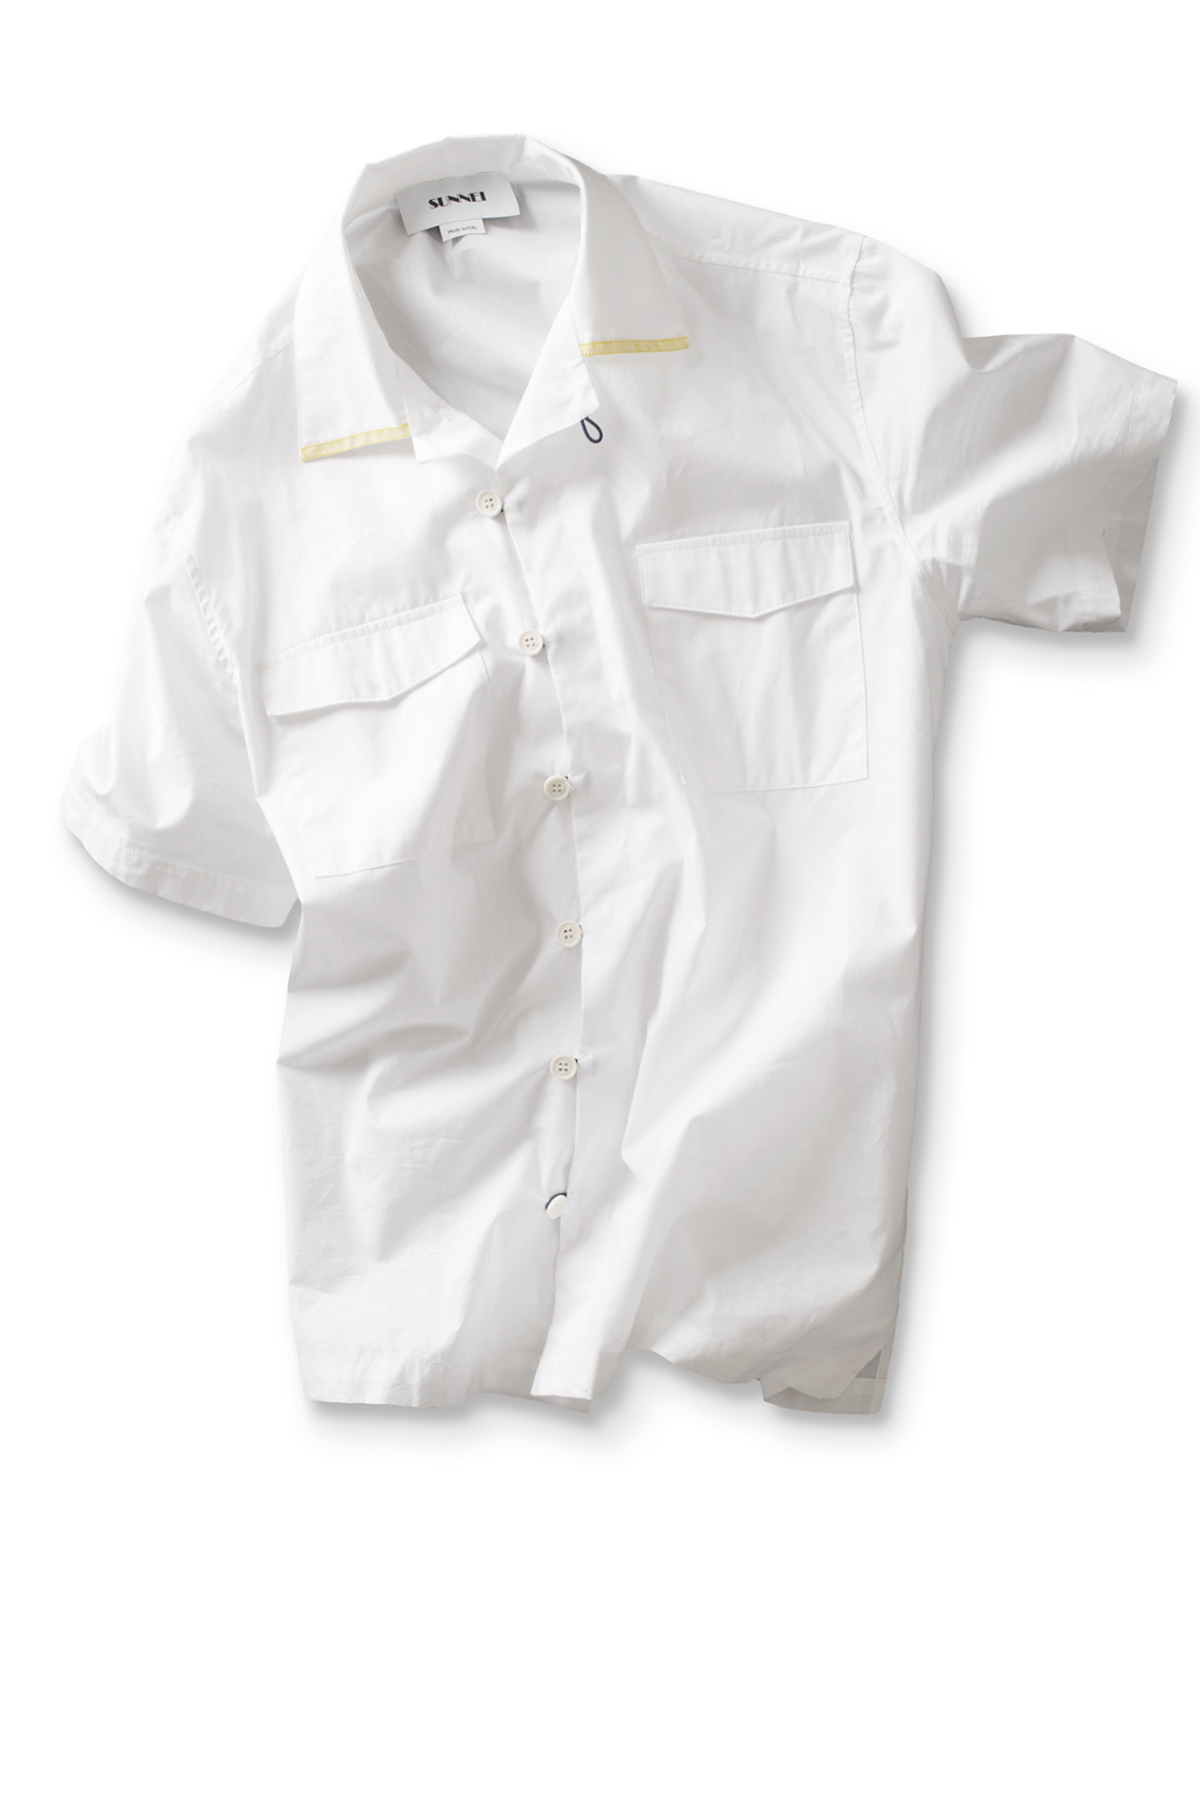 SUNNEI : Hawaian Shirt (White)